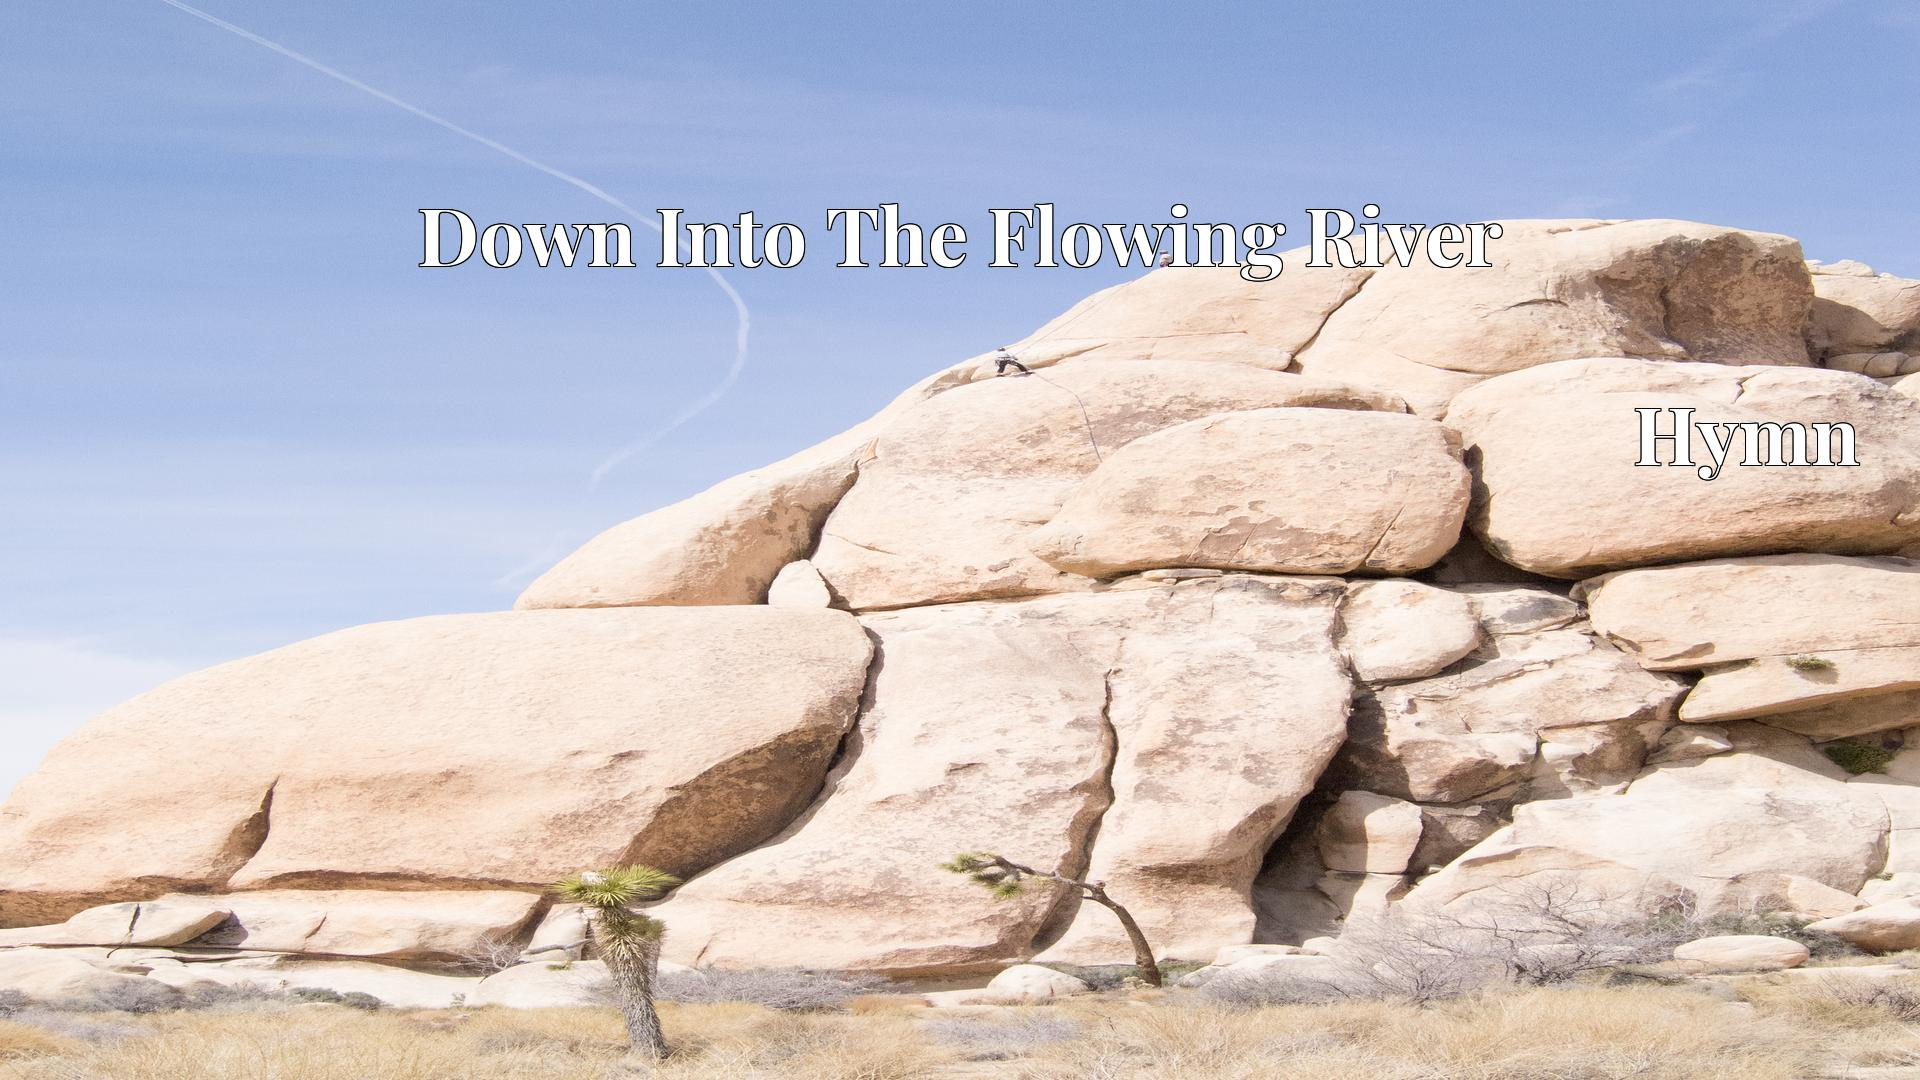 Down Into The Flowing River - Hymn